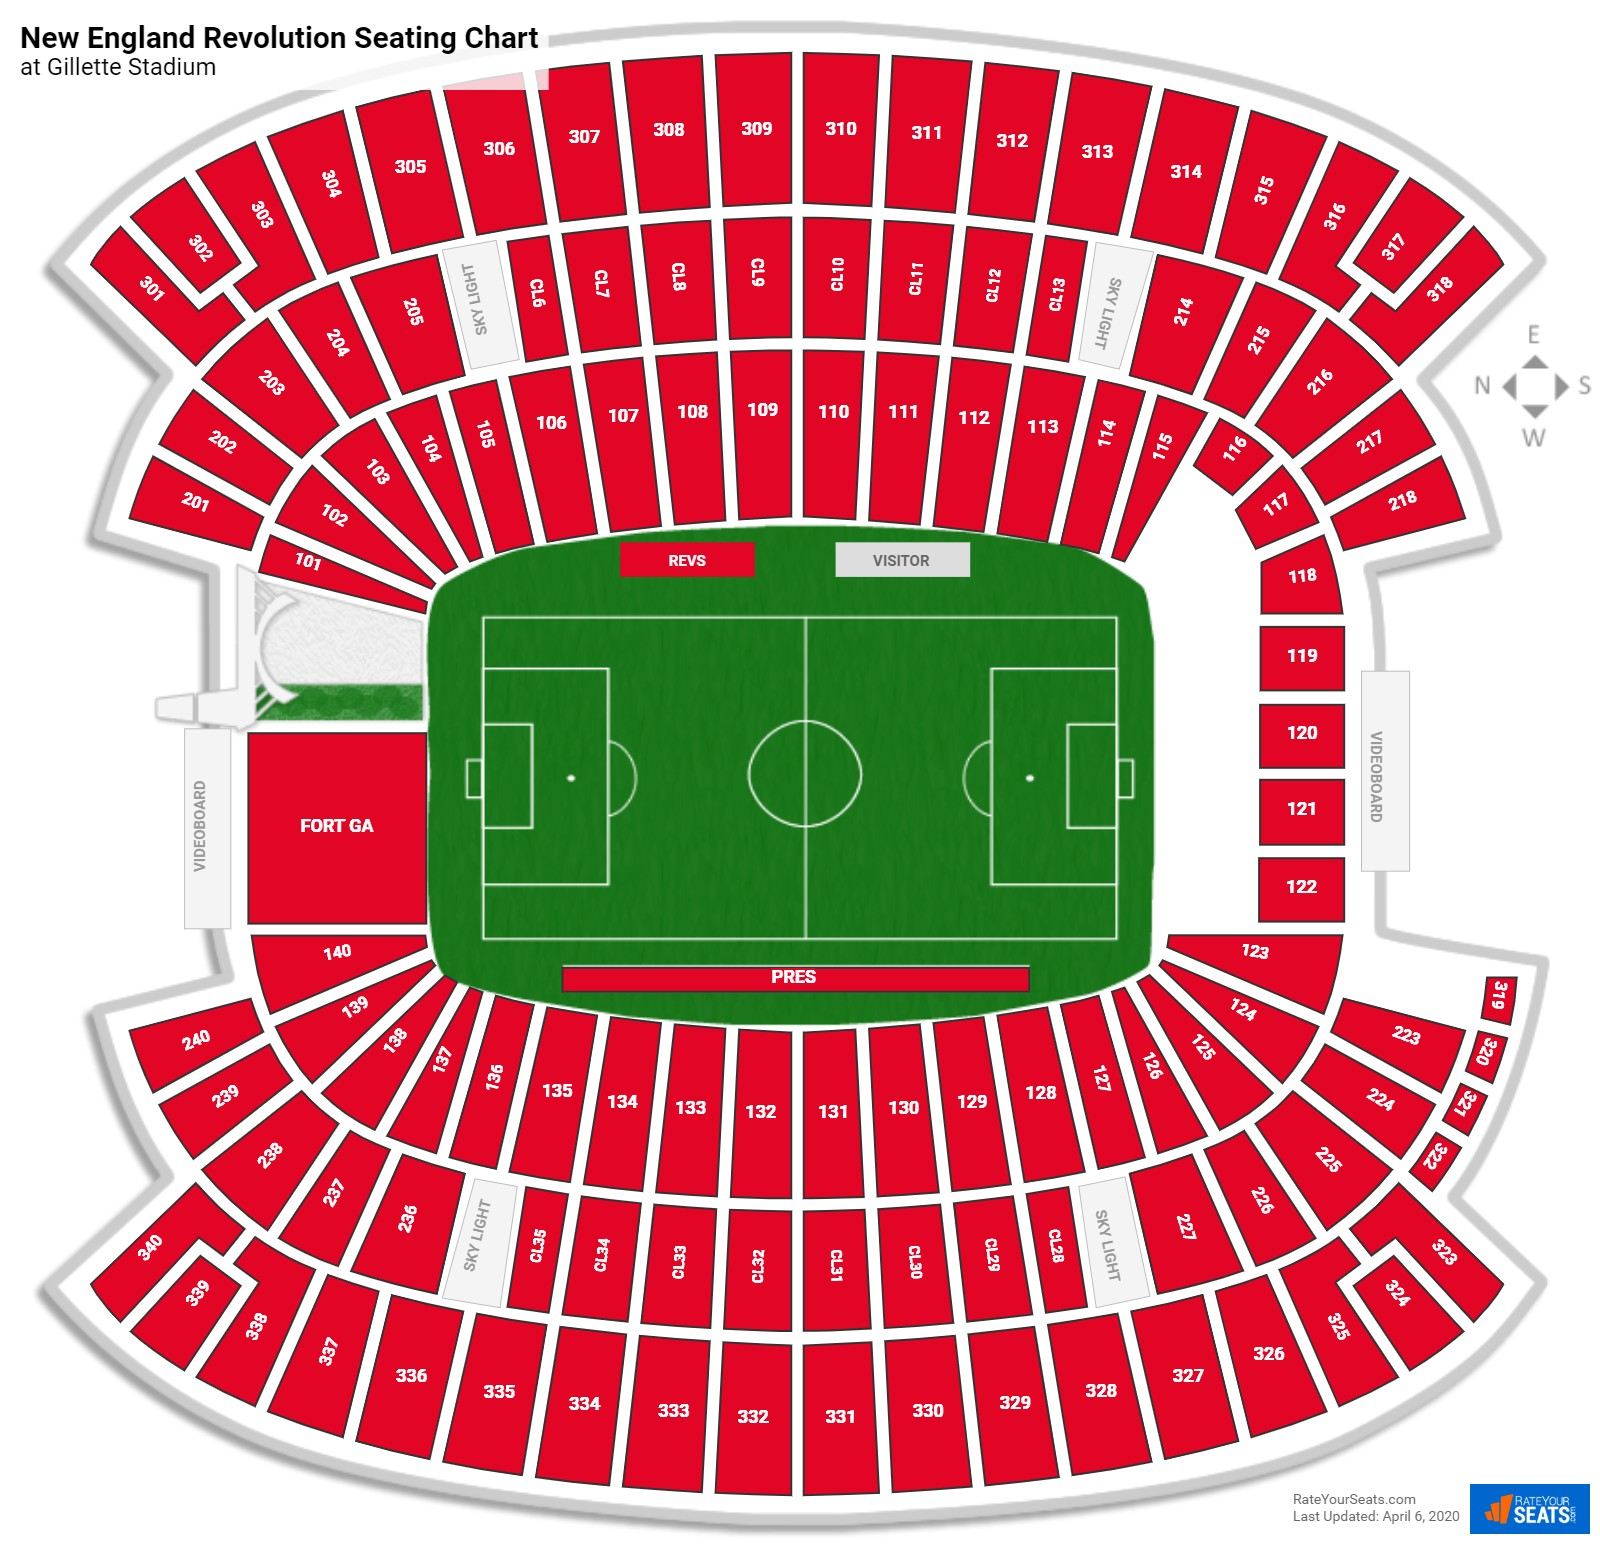 New England Revolution Seating Charts At Gillette Stadium Rateyourseats Com